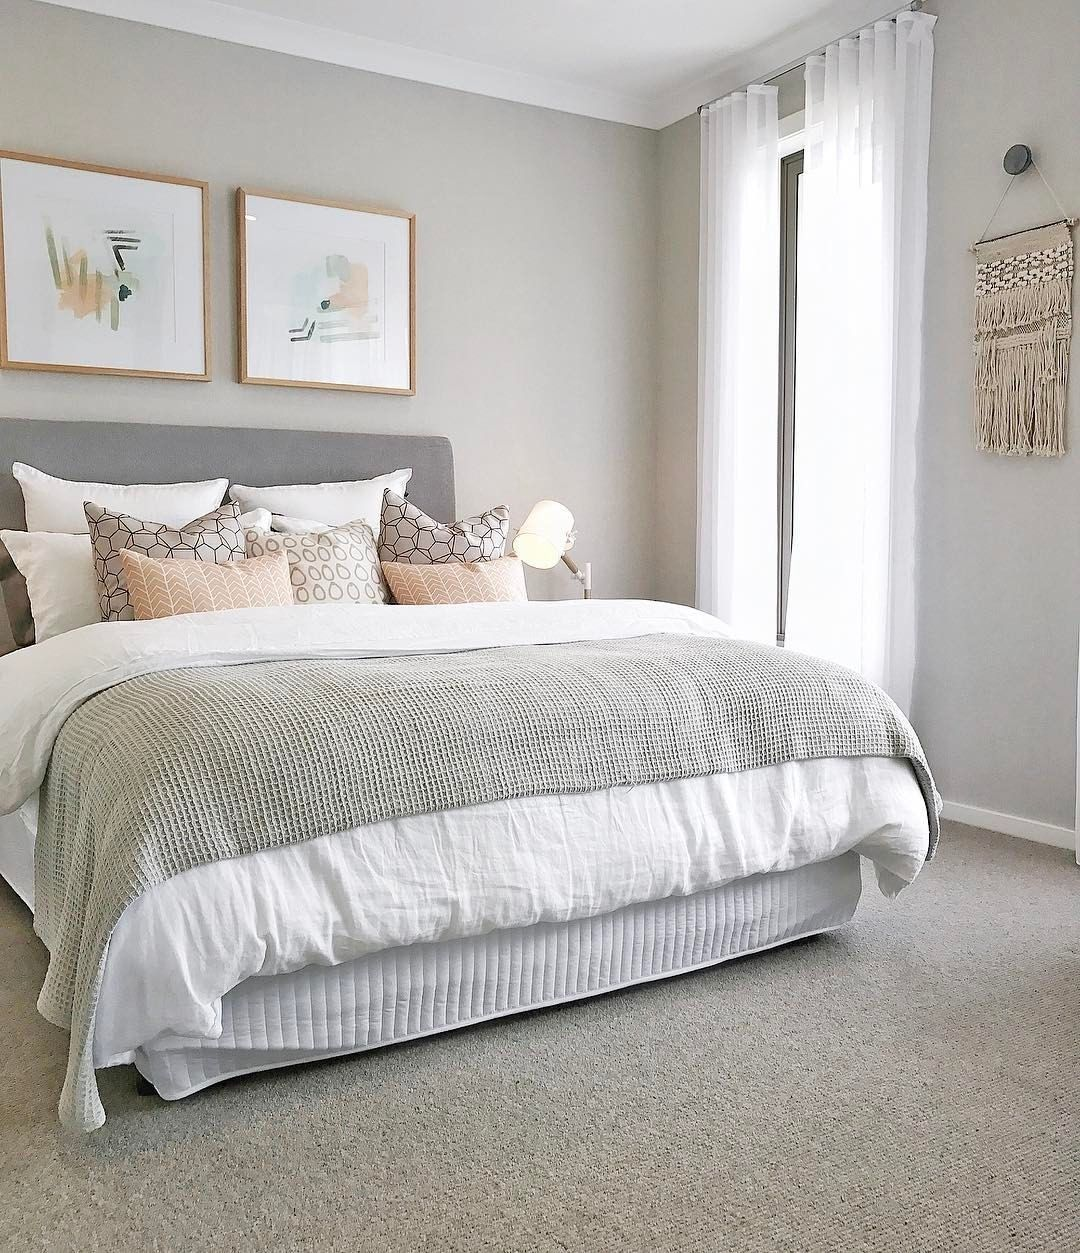 34 Paint Ideas For Bedrooms In A Range Of Colors images